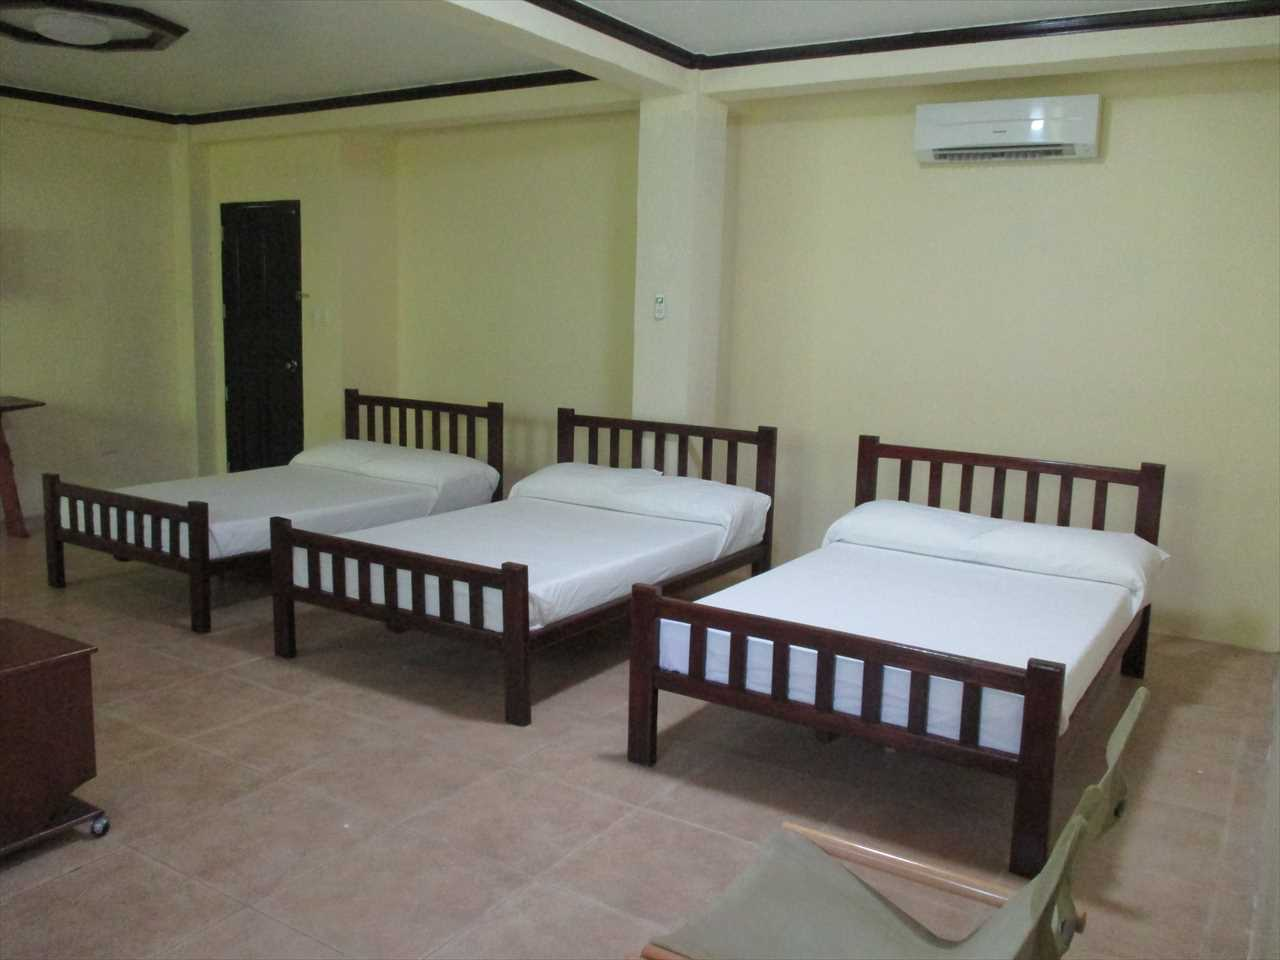 3 Double size beds, air-con